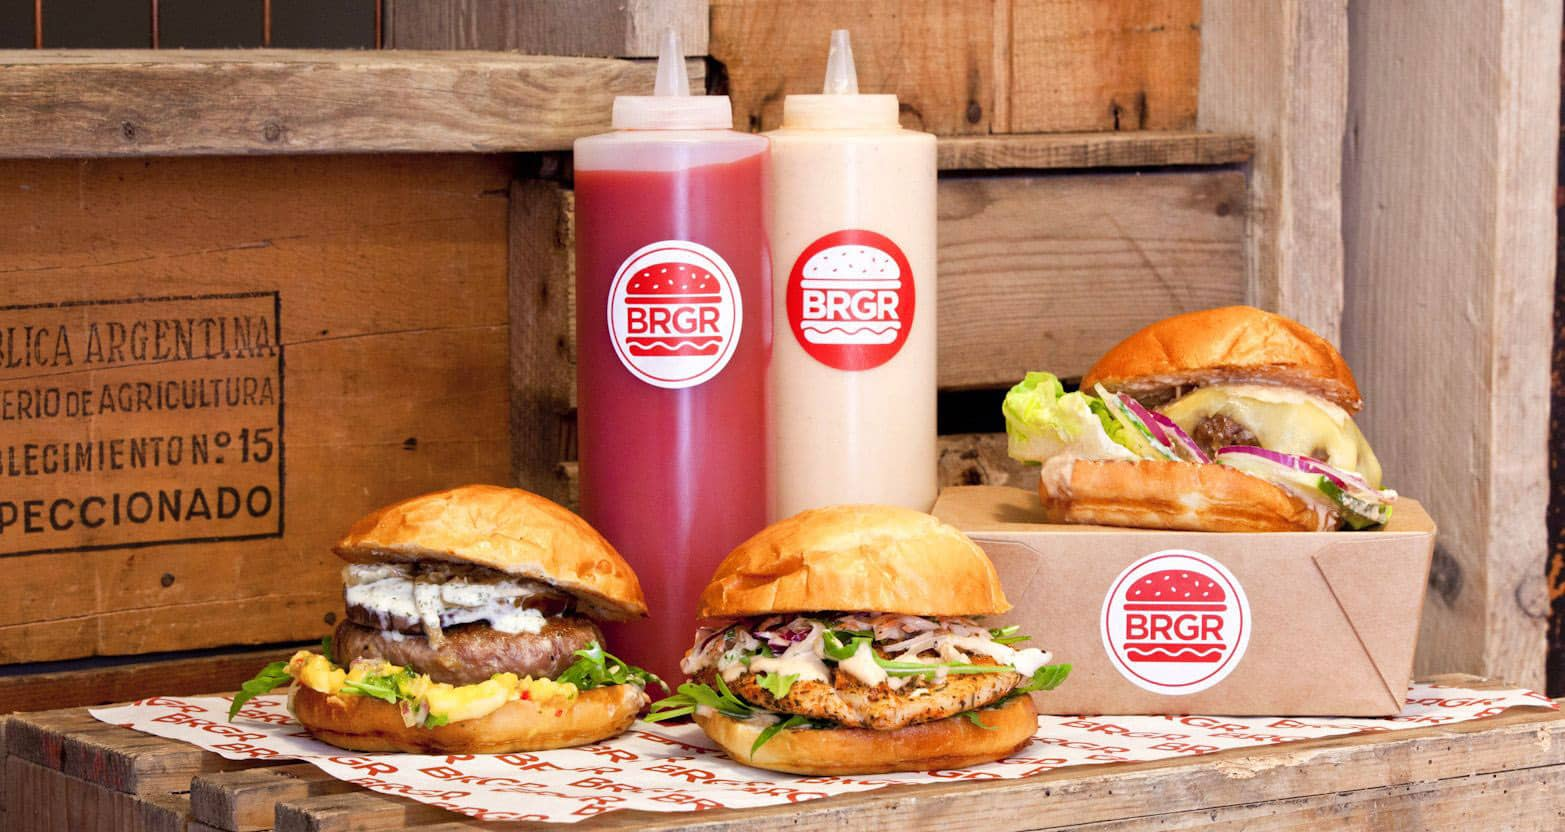 BRGR Burger Packaging